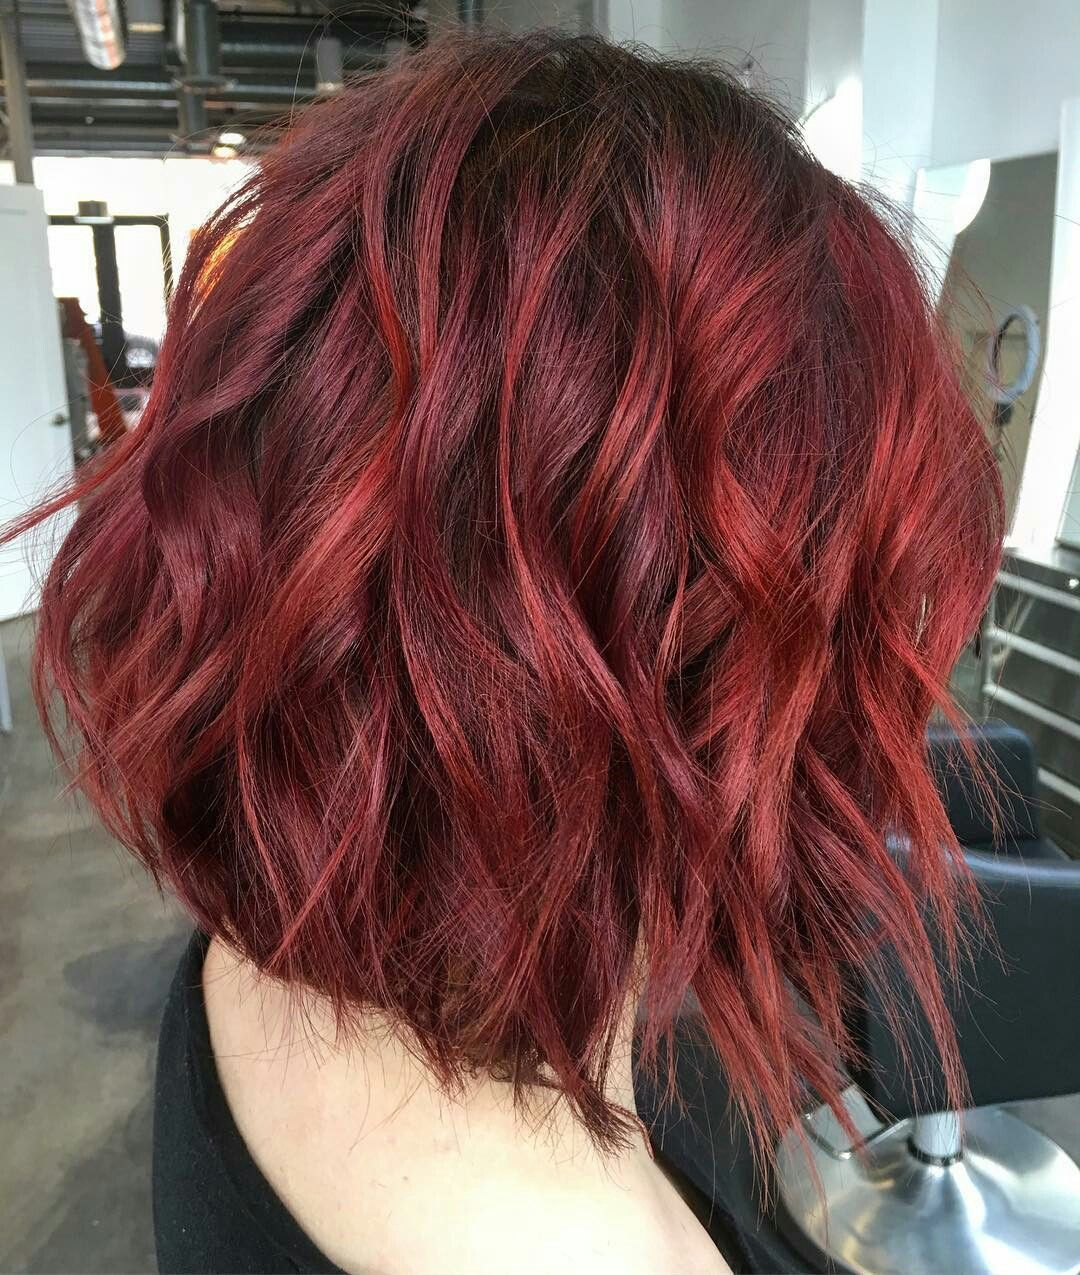 Follow Instagram Agathamont3 Pinterest Agathamont3 Follow Instagram Agathamont3 Pinterest Agathamont3 In 2020 Short Red Hair Red Ombre Hair Red Bob Hair